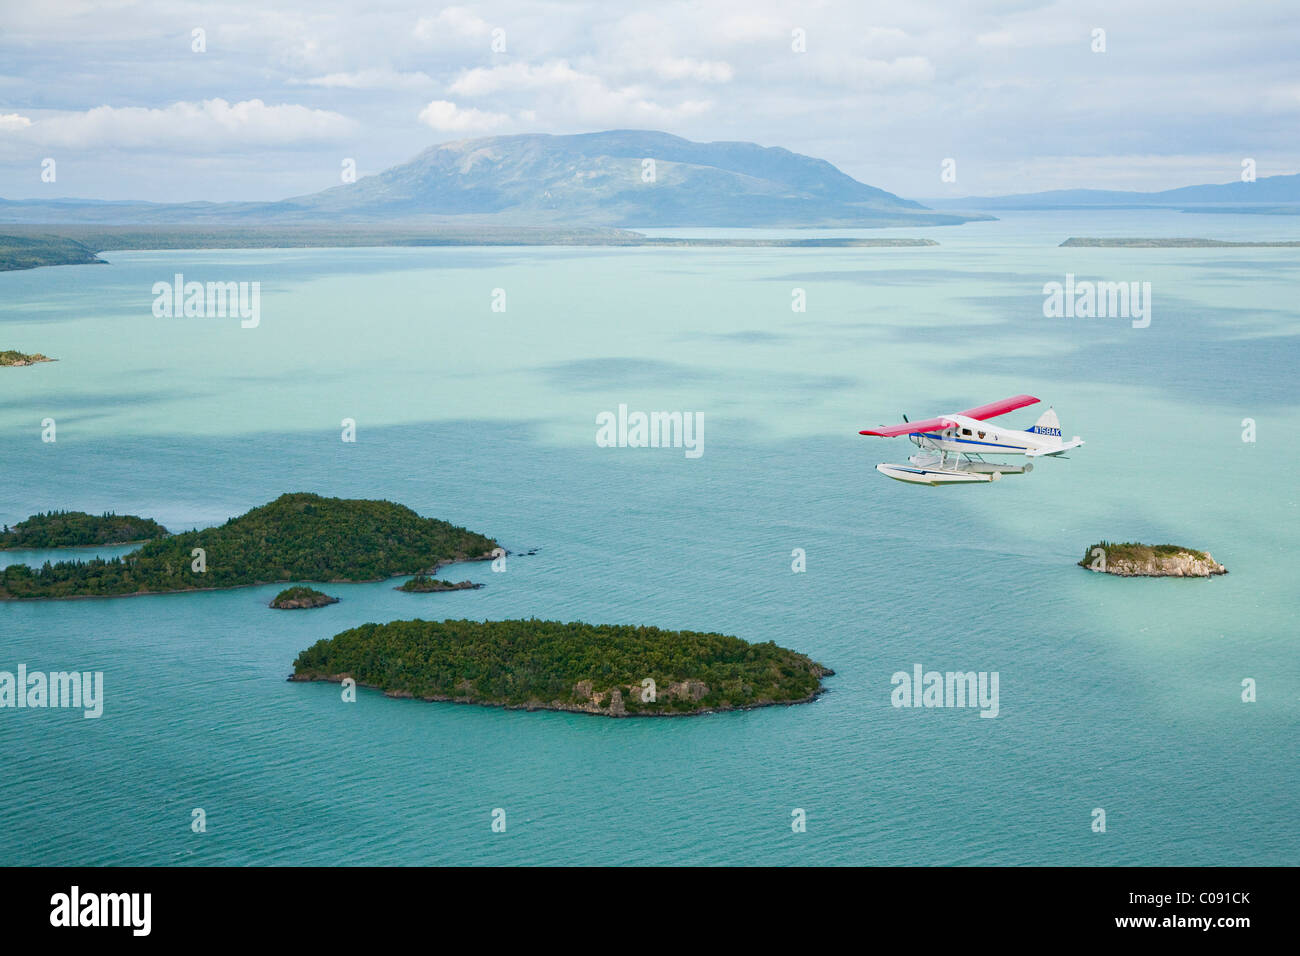 Aerial view of floatplane flying over Bristol Bay near Crystal Creek Lodge, King Salmon, Southwest Alaska, Summer - Stock Image